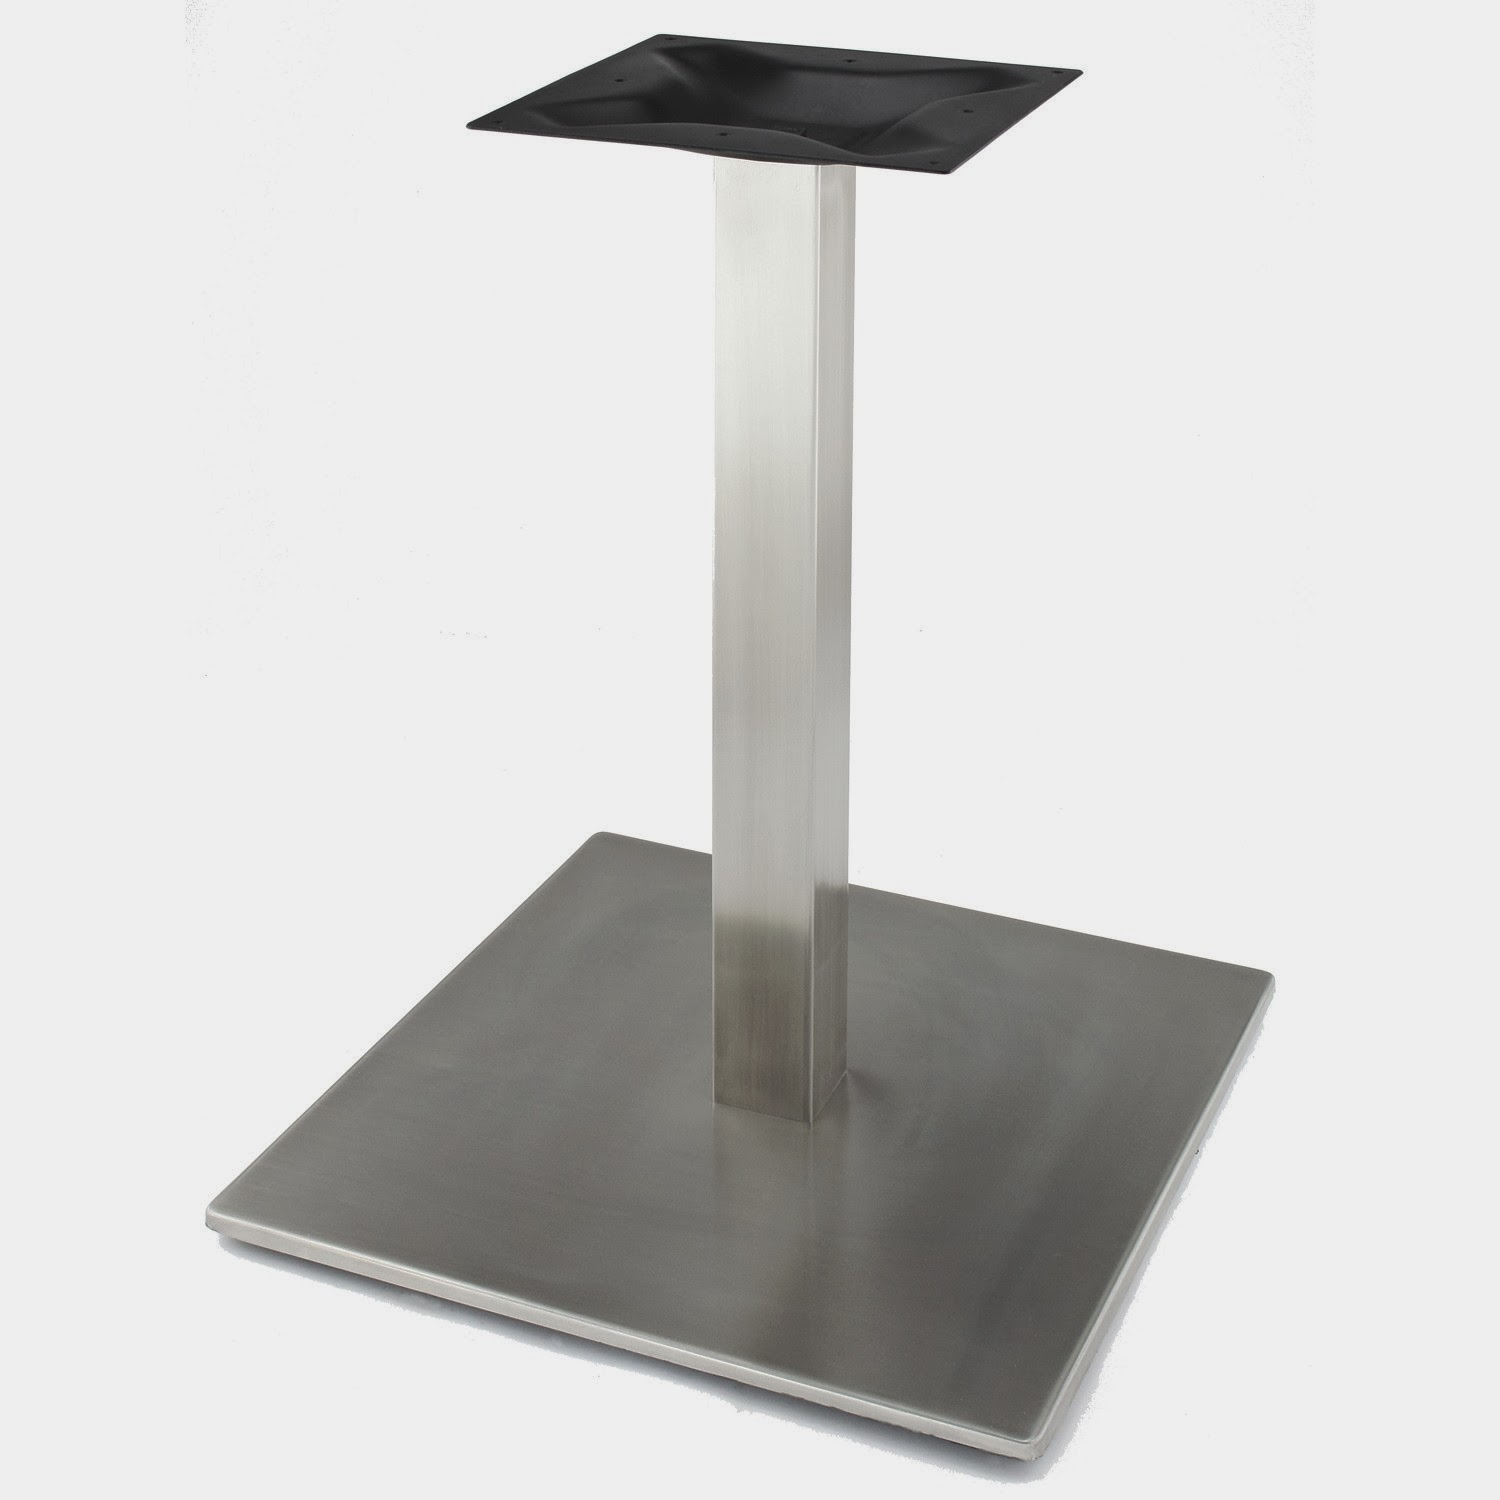 stainless steel chair legs company table